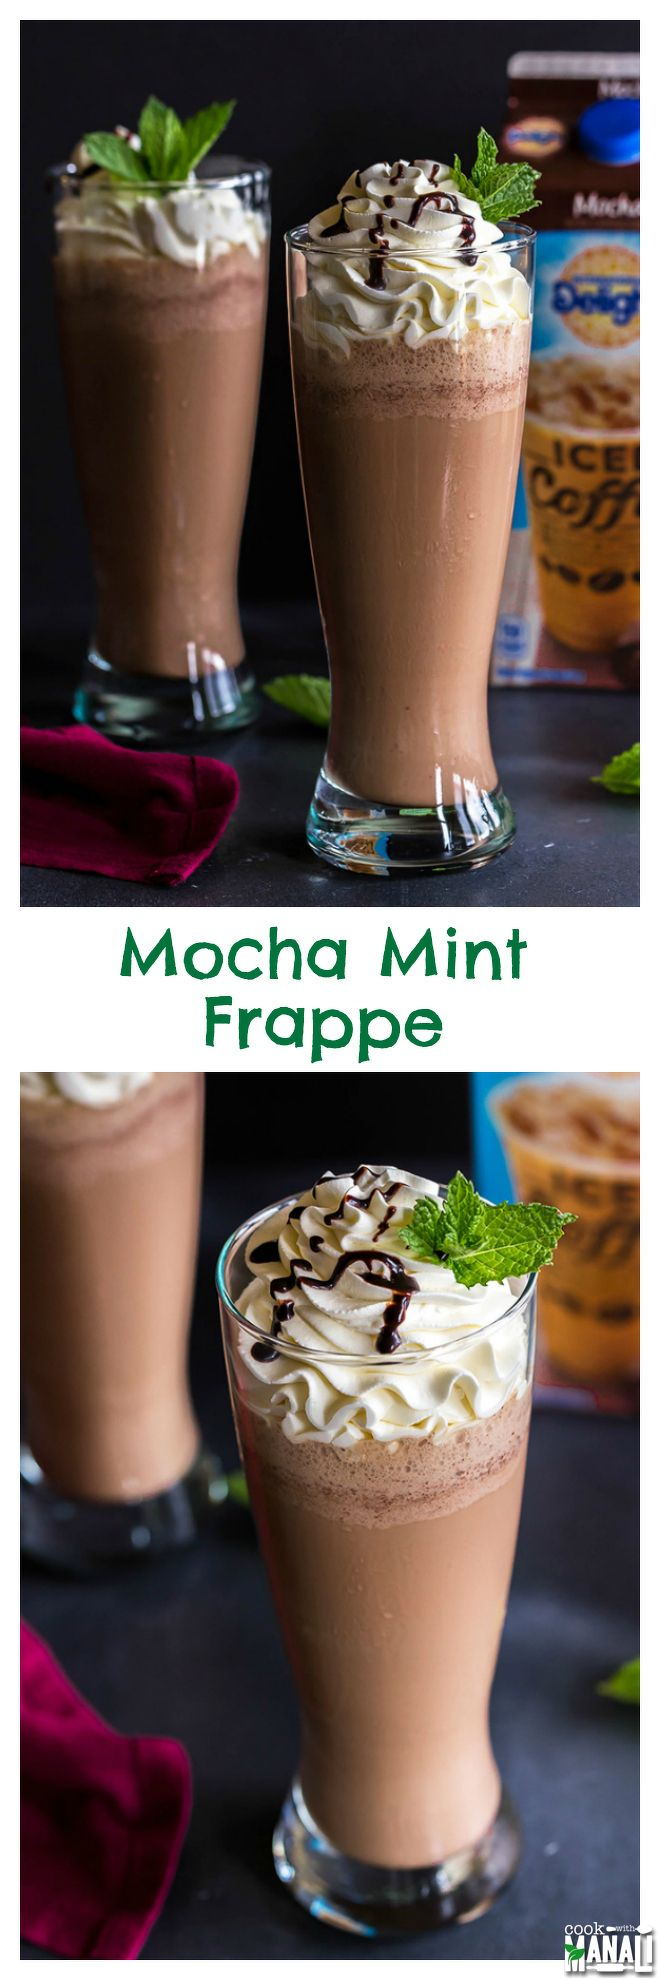 Iced Mocha Mint Frappe is the perfect drink to cool down on a hot day! Try this recipe during the dog days of summer.